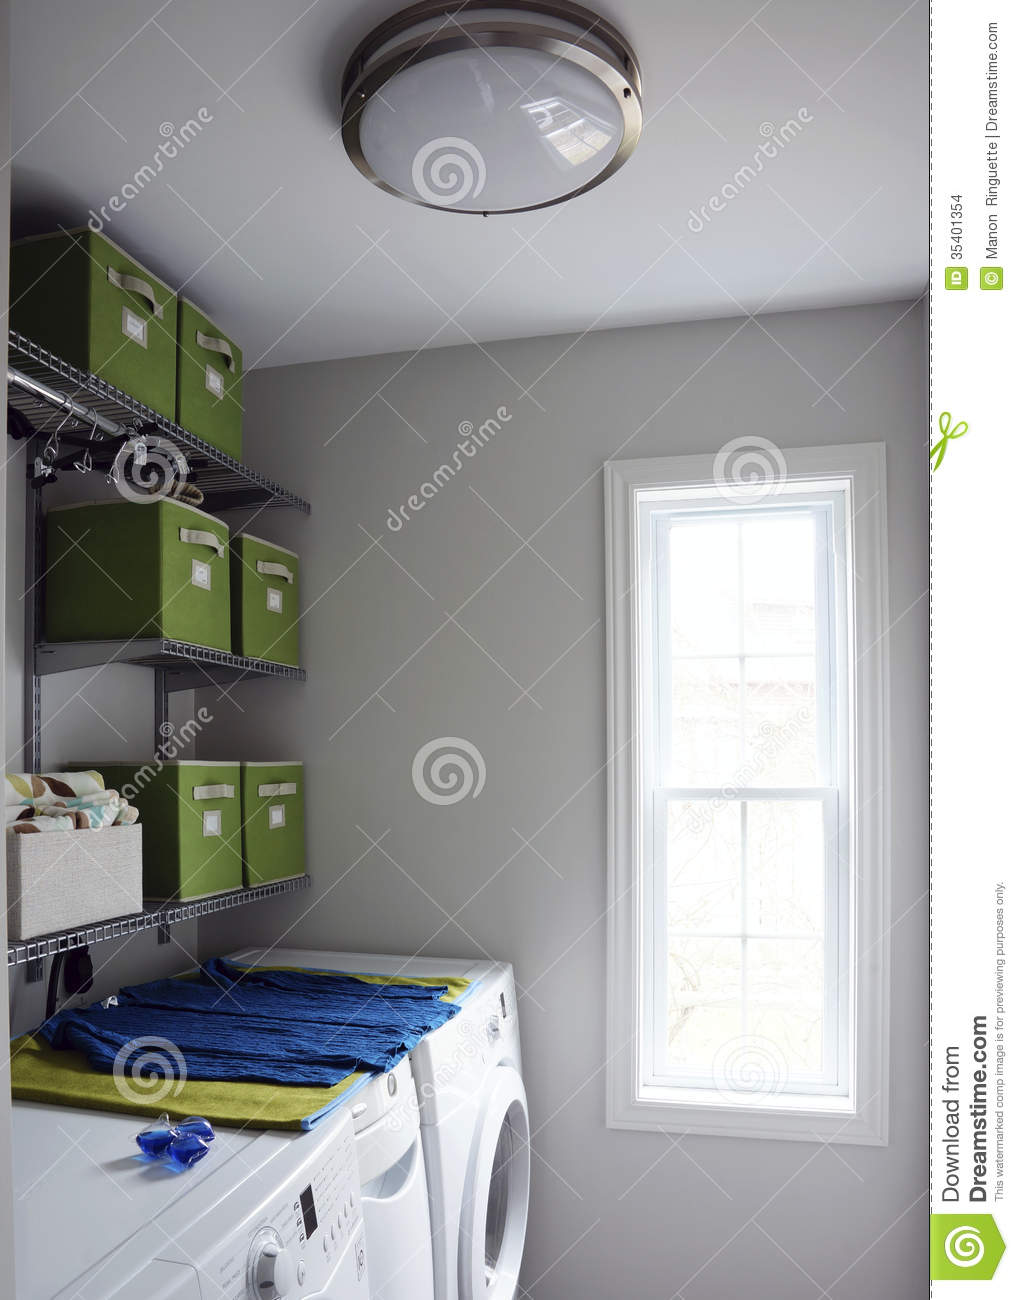 Modern Laundry Room Stock Images  Image 35401354